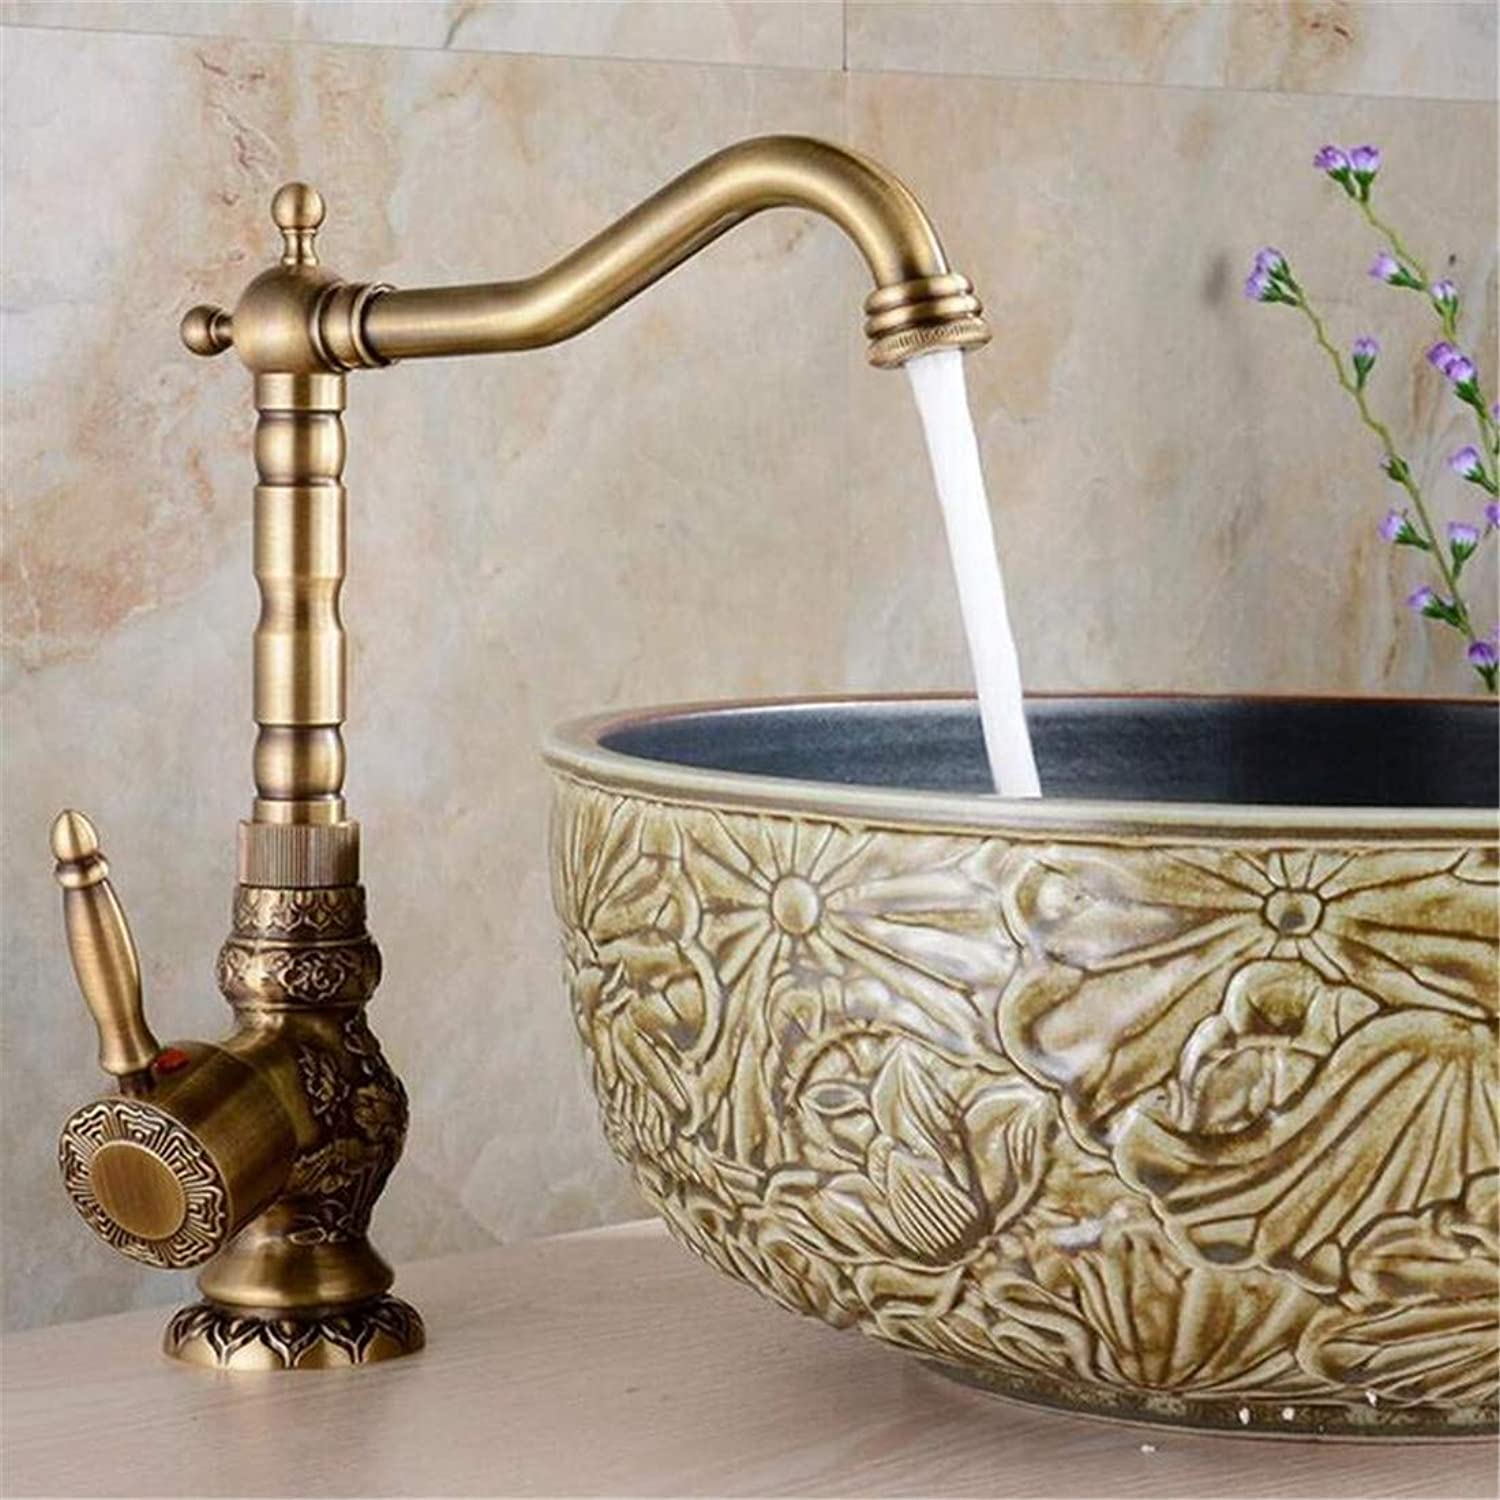 Vintage Faucet Faucet Antique Retro Rotary Vintage Carved Basin Hot And Cold Stage With Artistic Basin Mixing Water Bronze